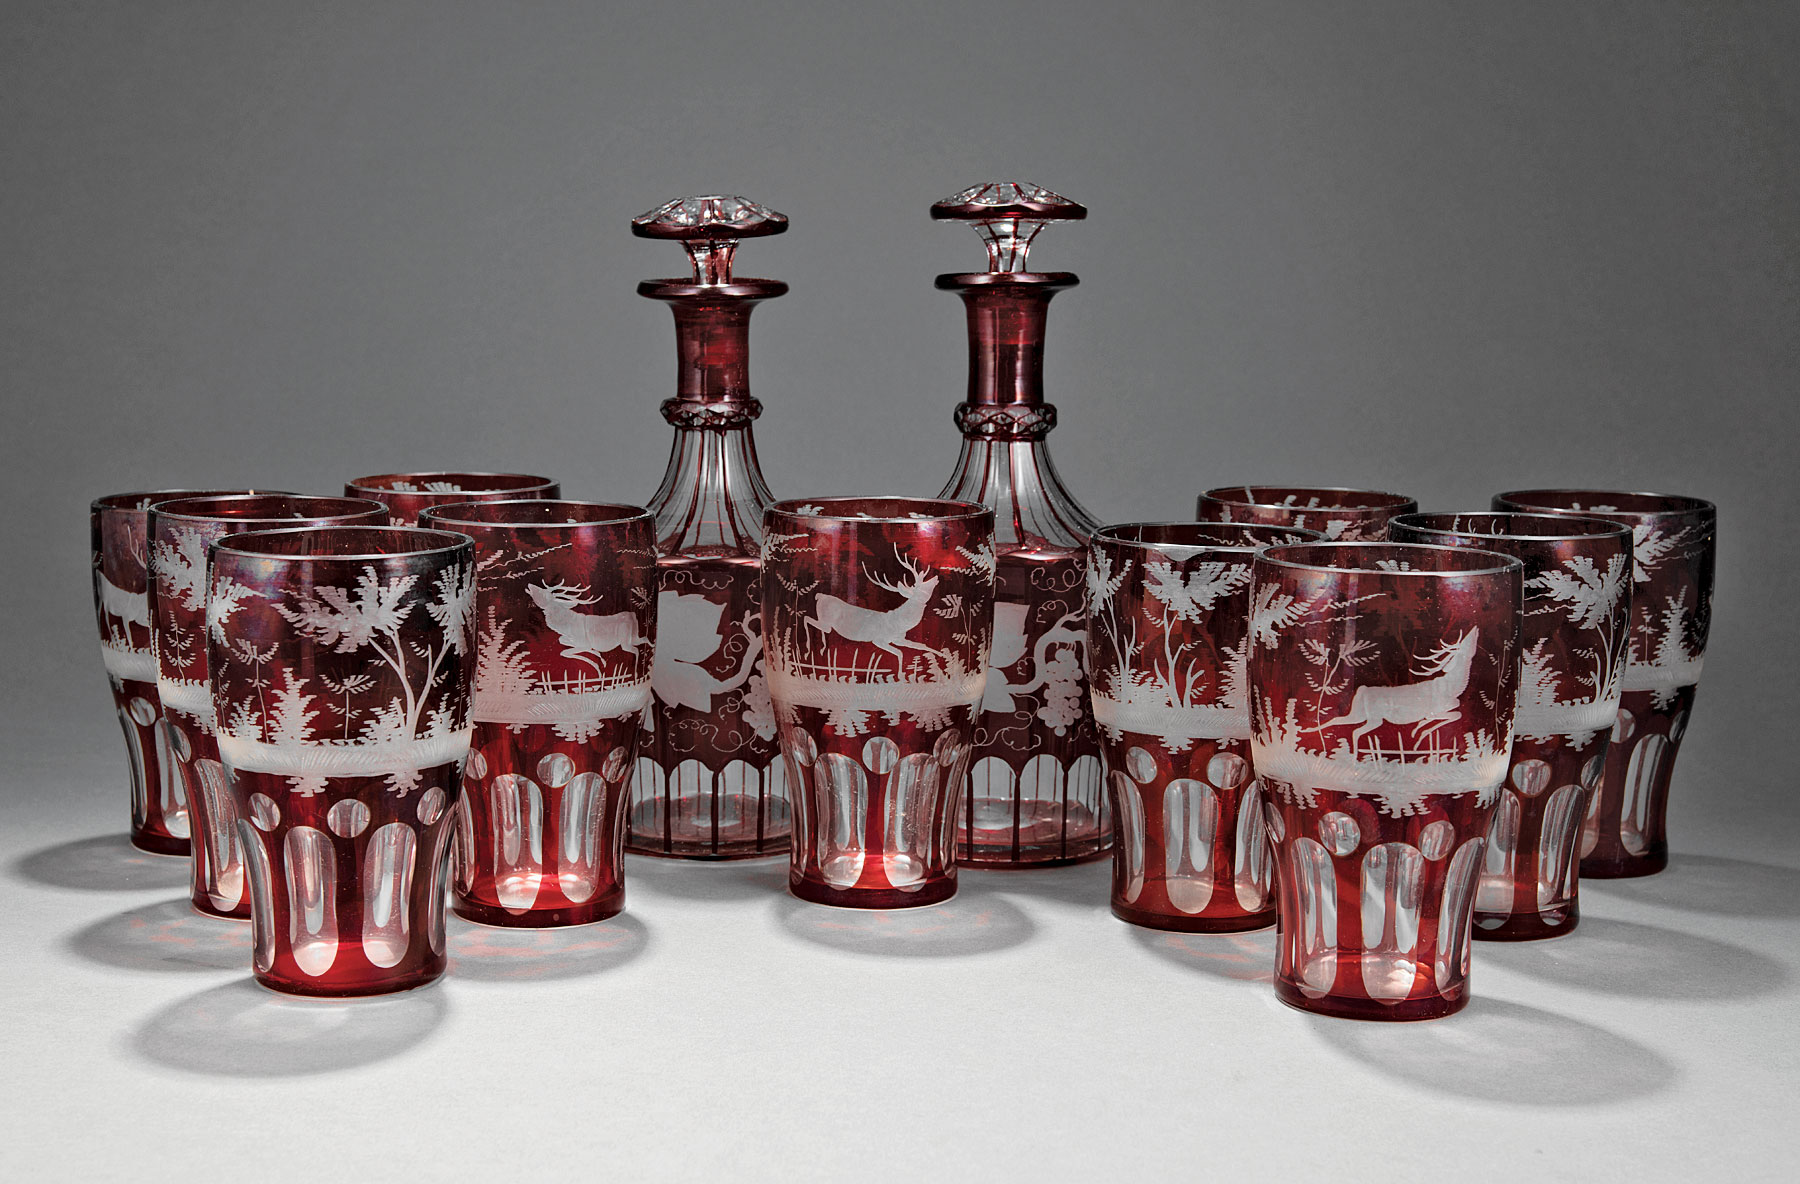 Lot 764 - Set of Eleven Bohemian Ruby Cut-to-Clear Glass Tumblers , decorated with deer in forest scenes, h. 5